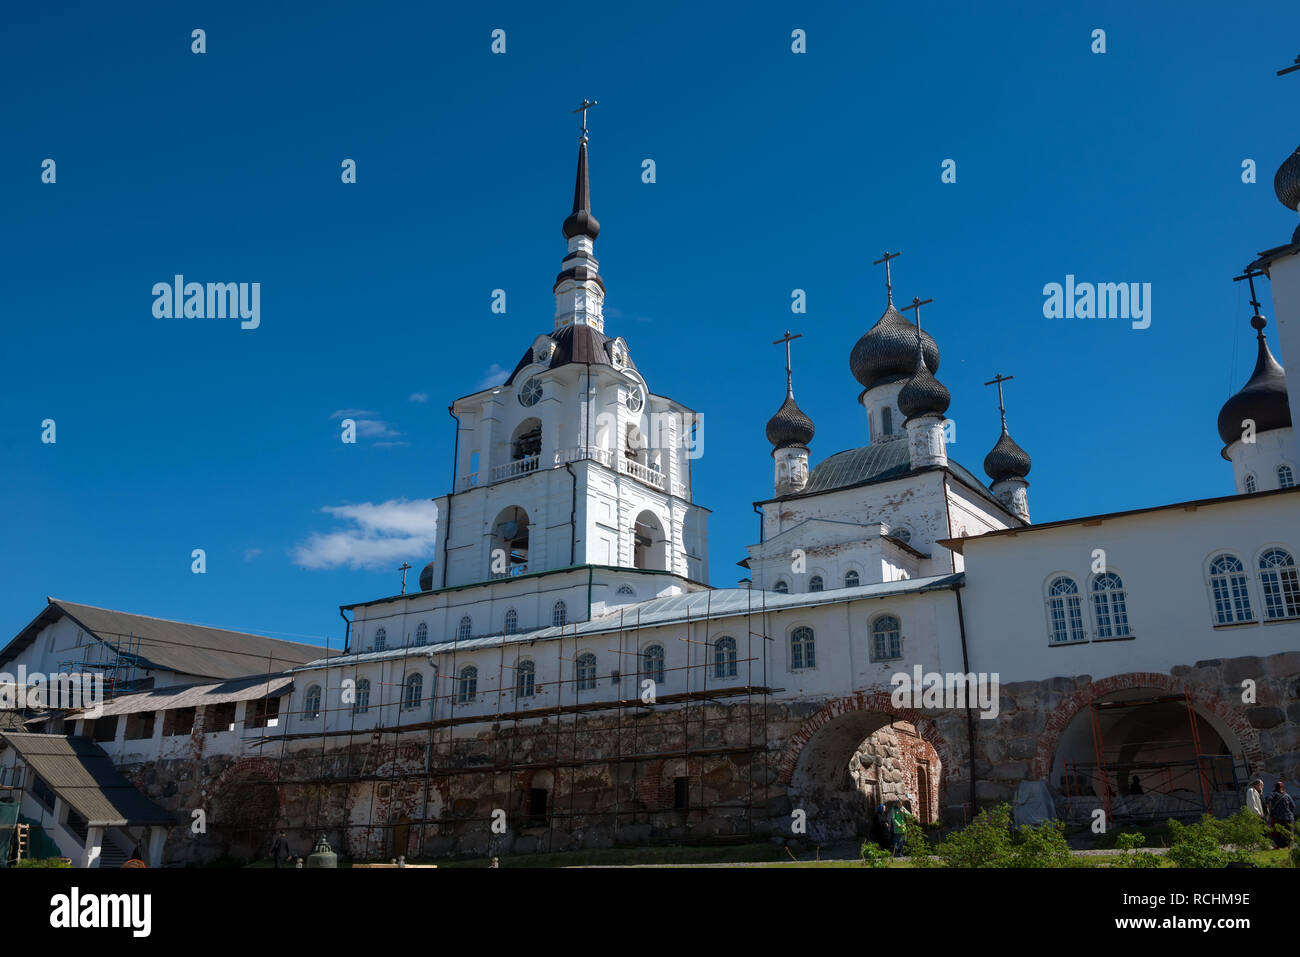 SOLOVKI, REPUBLIC OF KARELIA, RUSSIA - JUNE 27, 2018: In the Spaso-Preobrazhensky Solovetsky Monastery. Russia, Arkhangelsk region, Primorsky district Stock Photo